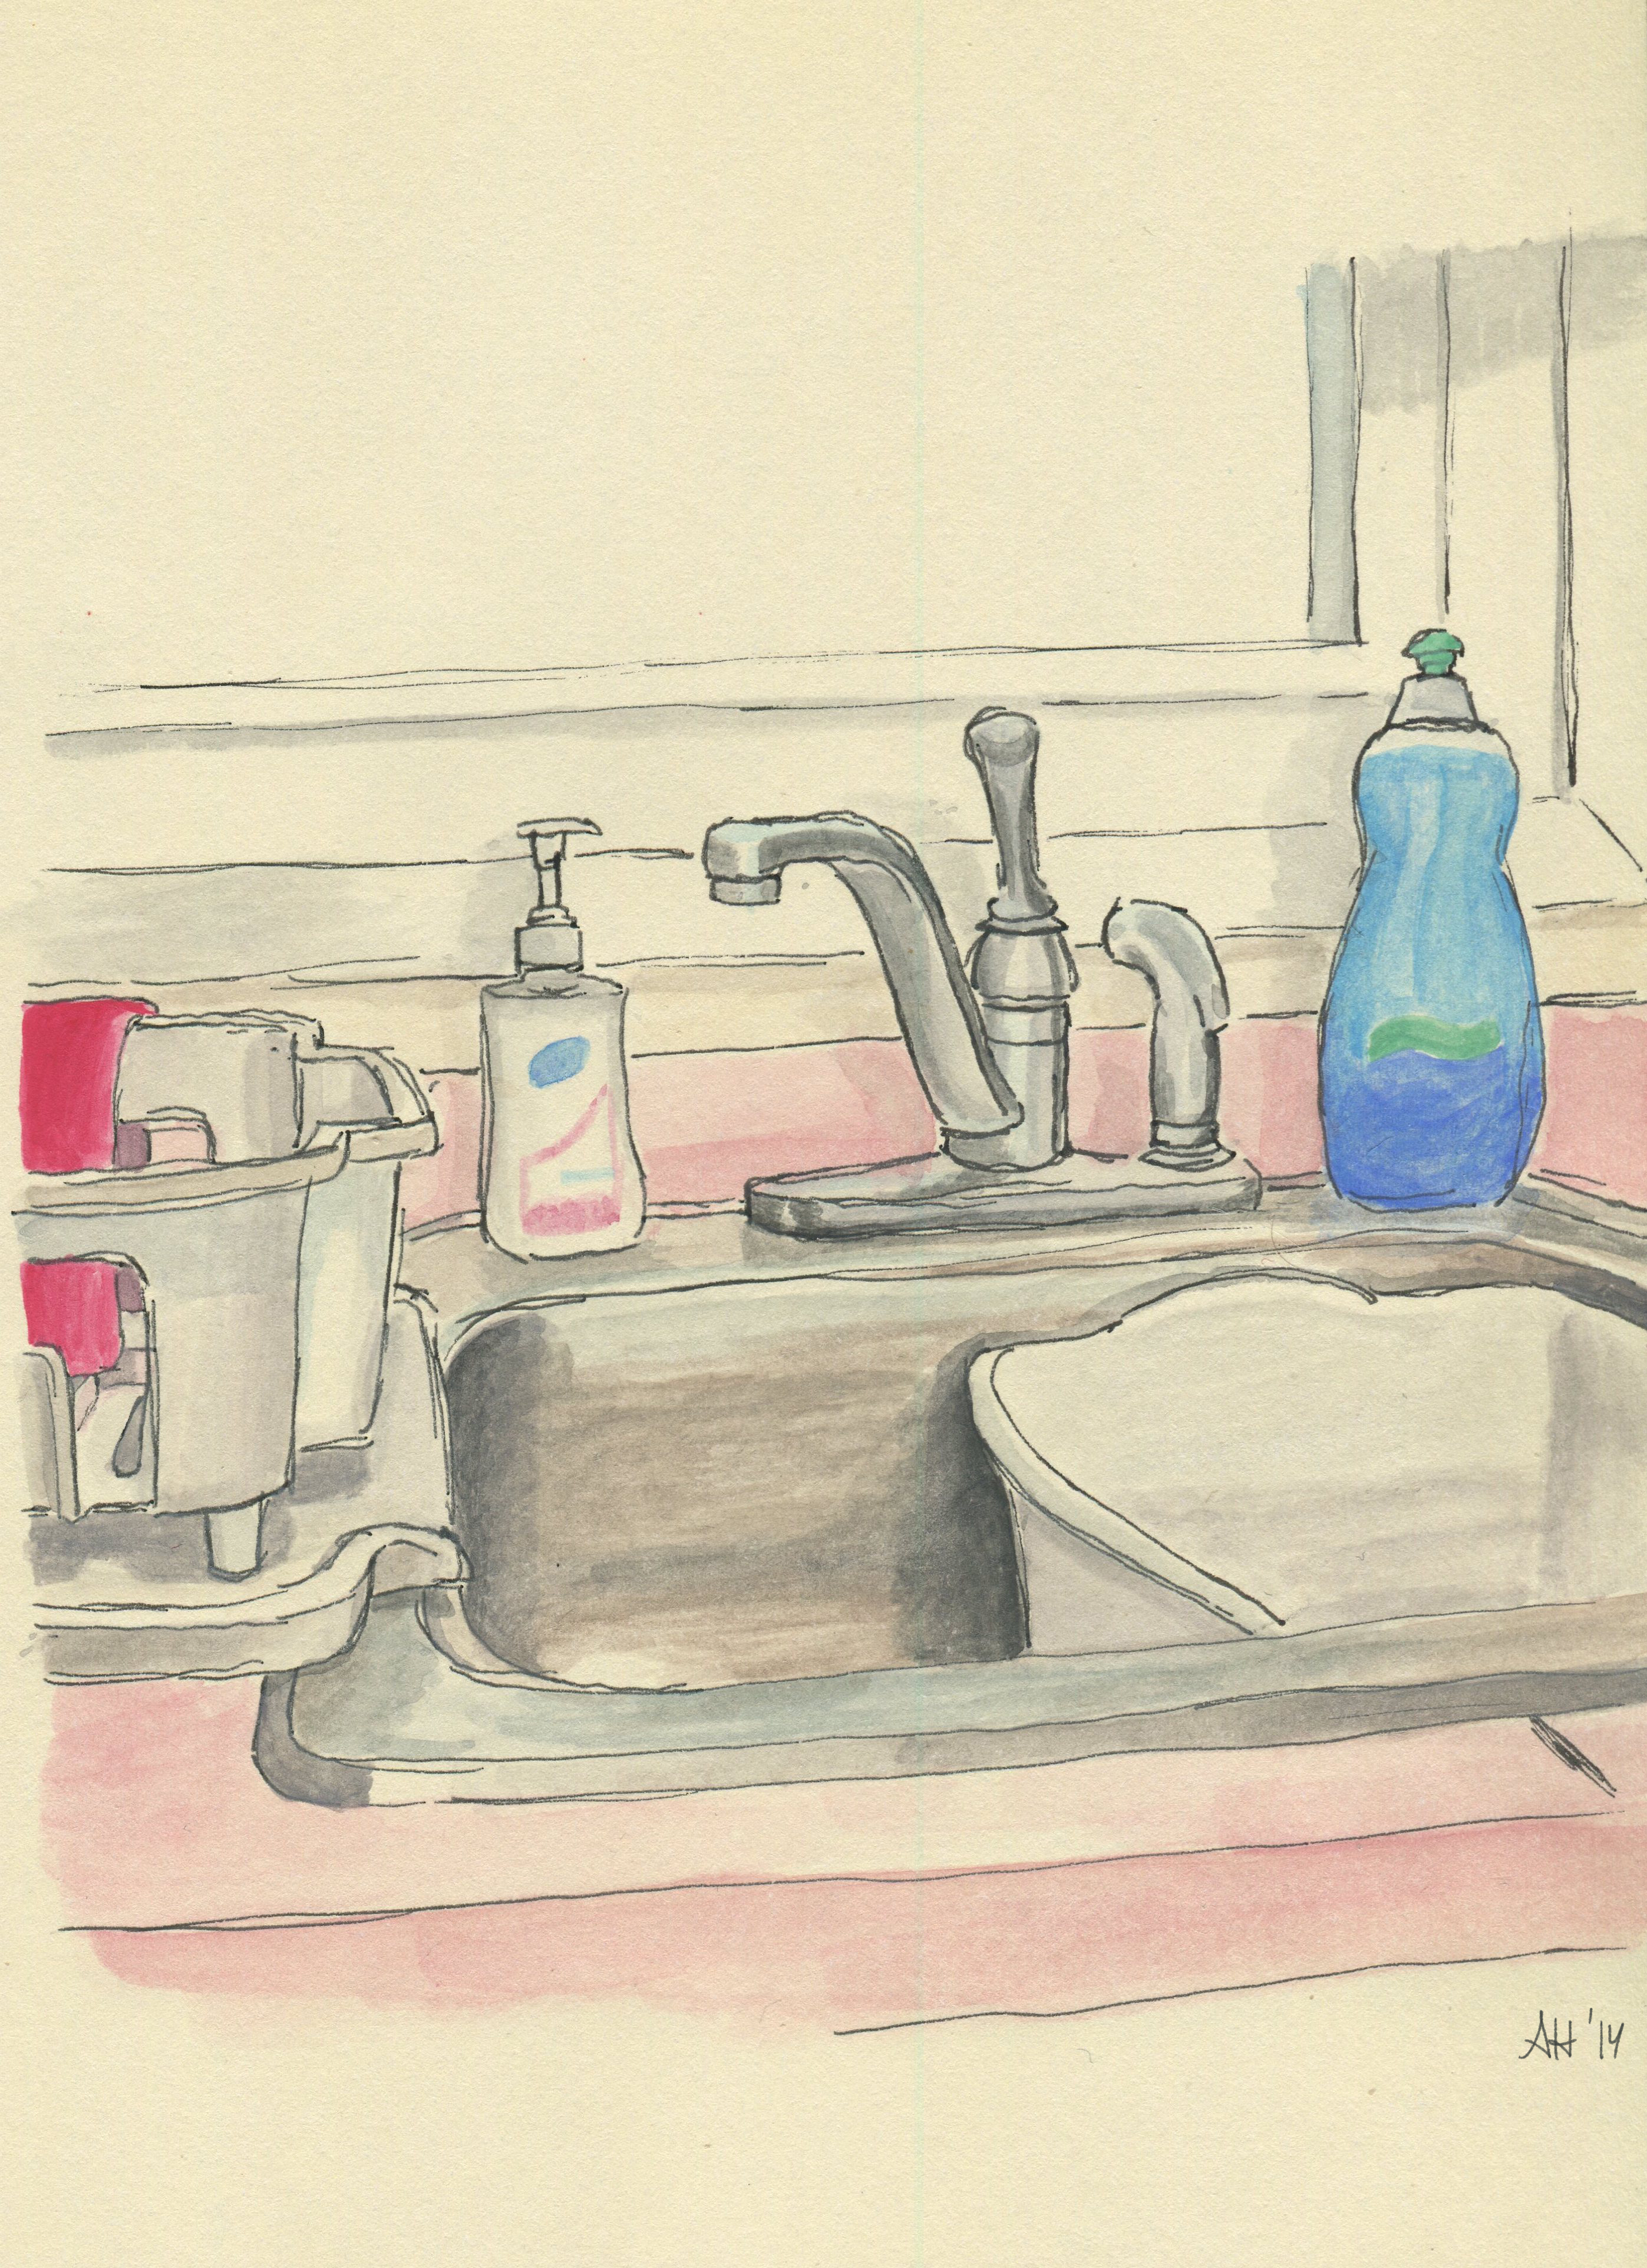 A kitchen sink after washing the dishes, sketched by Alleanna Harris